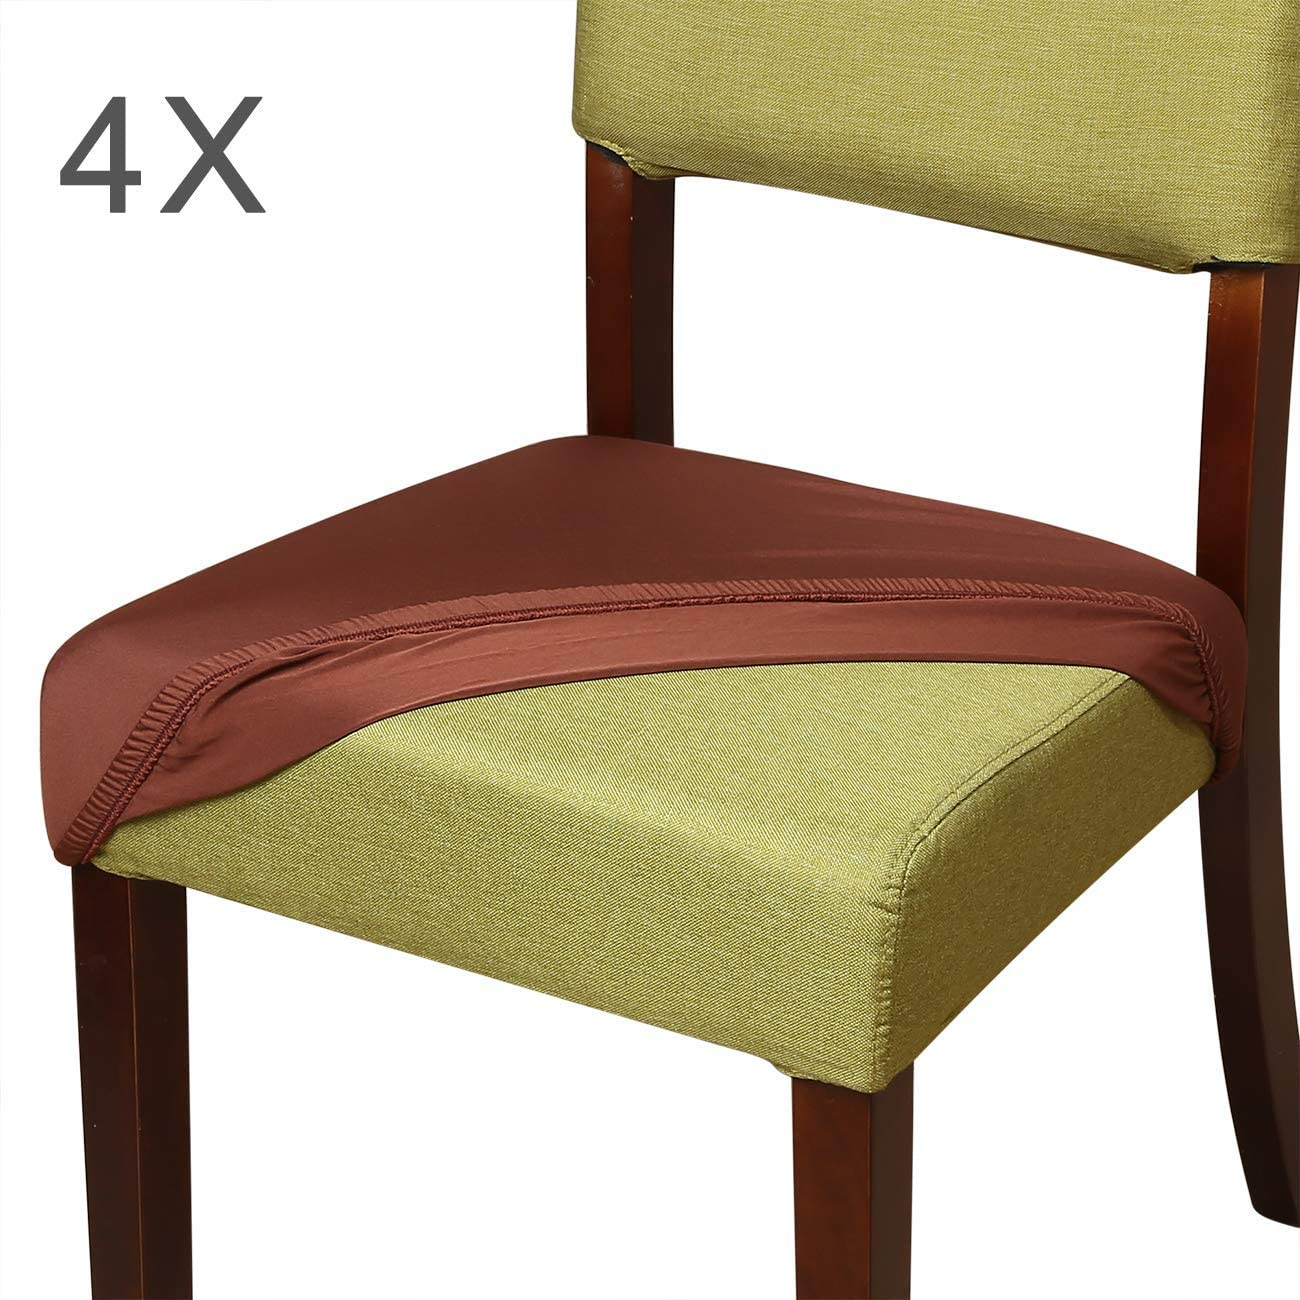 Aonepro Chair Seat Covers,4 Pcs Stretch Spandex Dining Chair Cover Slipcovers, Office Chair Protectors for 14-21 Inches Seat - Black/Coffee Brown (4pcs Seat Covers - 18 inch, Coffee)